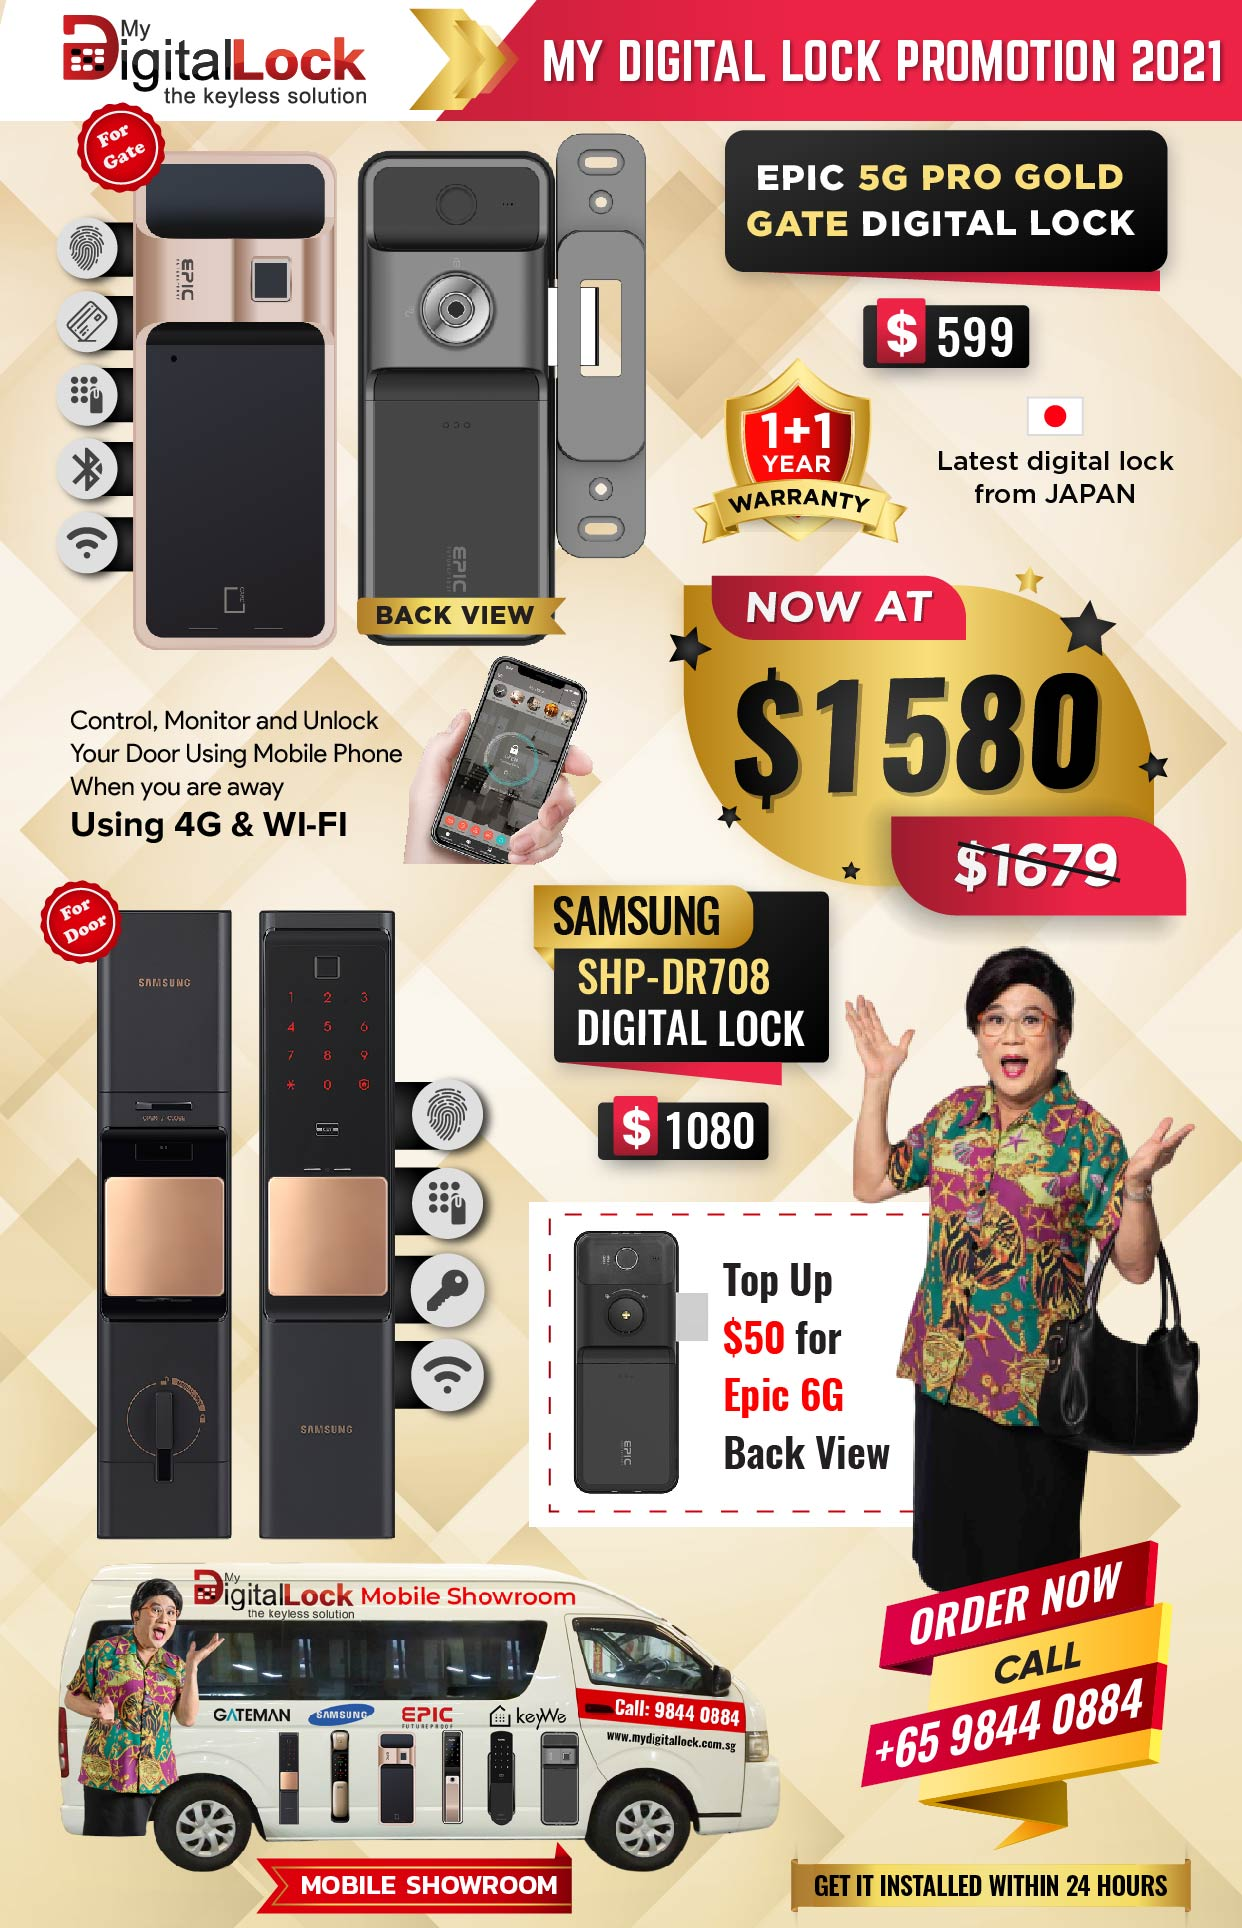 Epic 5g Pro Gold gate Digitallock promotion 2021